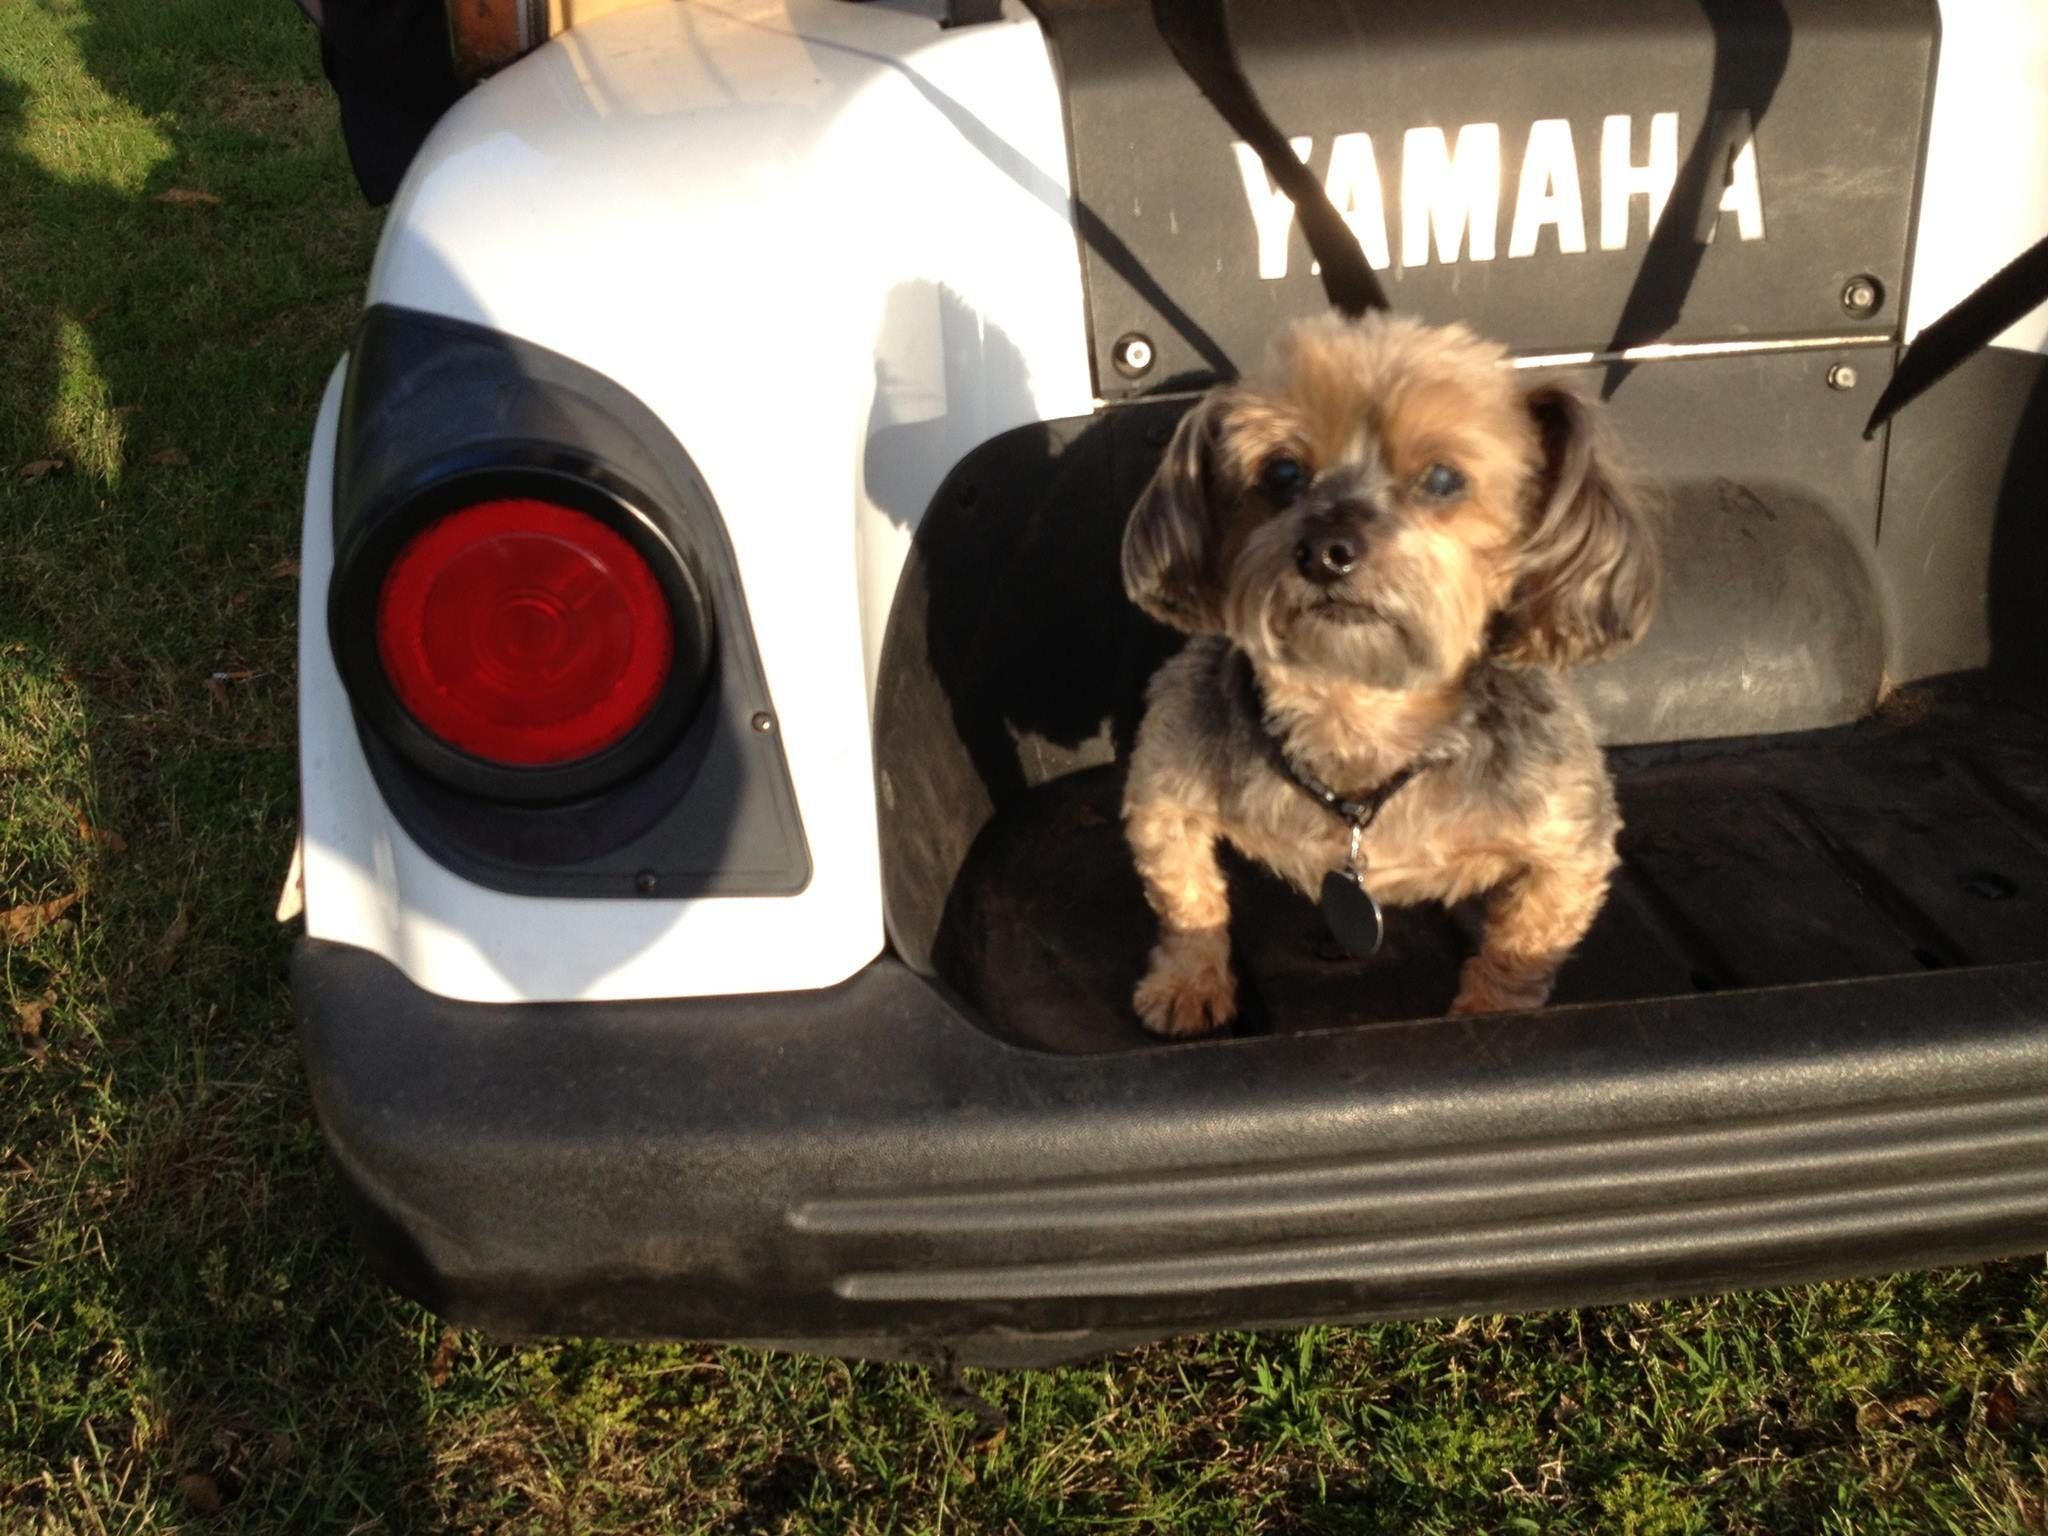 The author's dog, Sapp, who loved going for rides and running on golf courses.